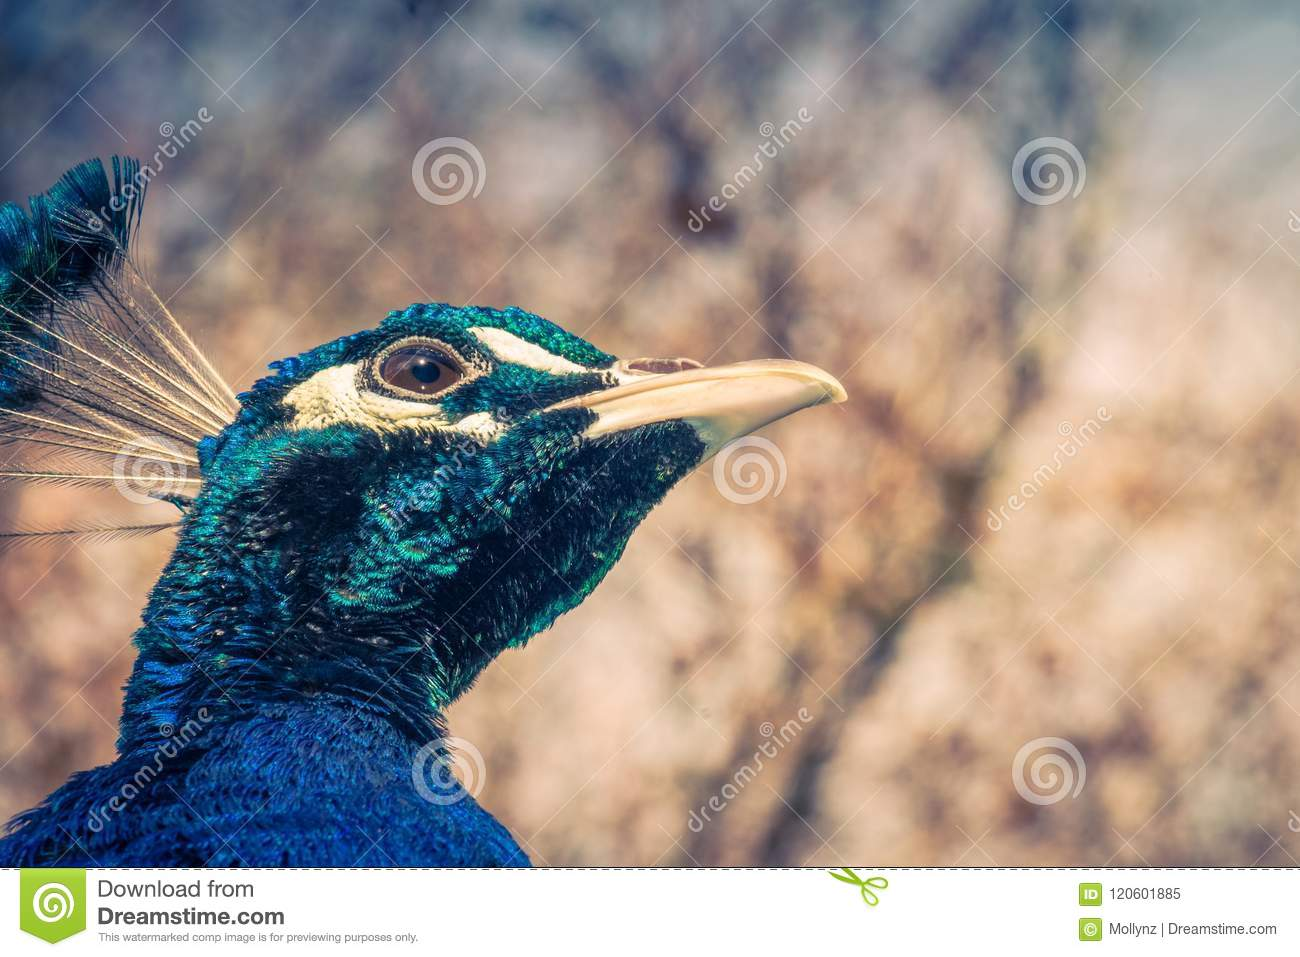 Close up view of a Peacock face with copy space